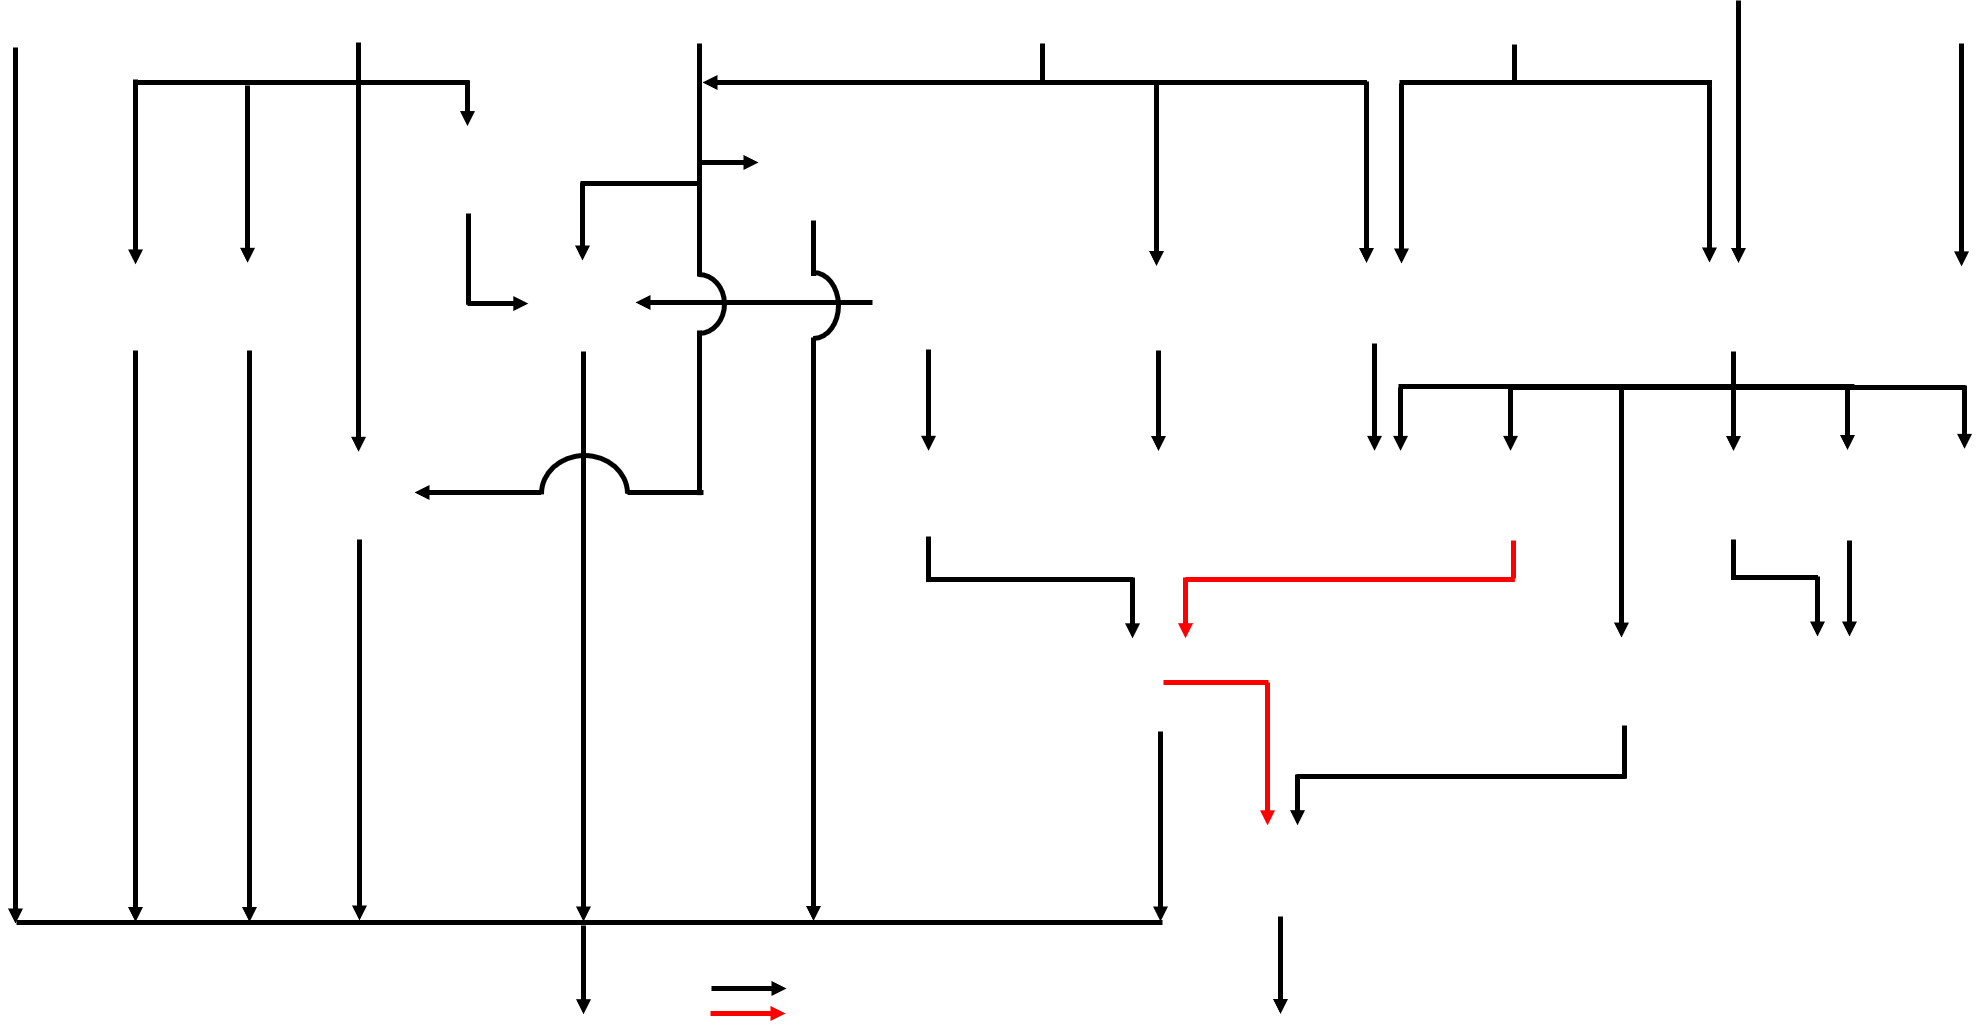 Csb course flowchart nvjuhfo Image collections